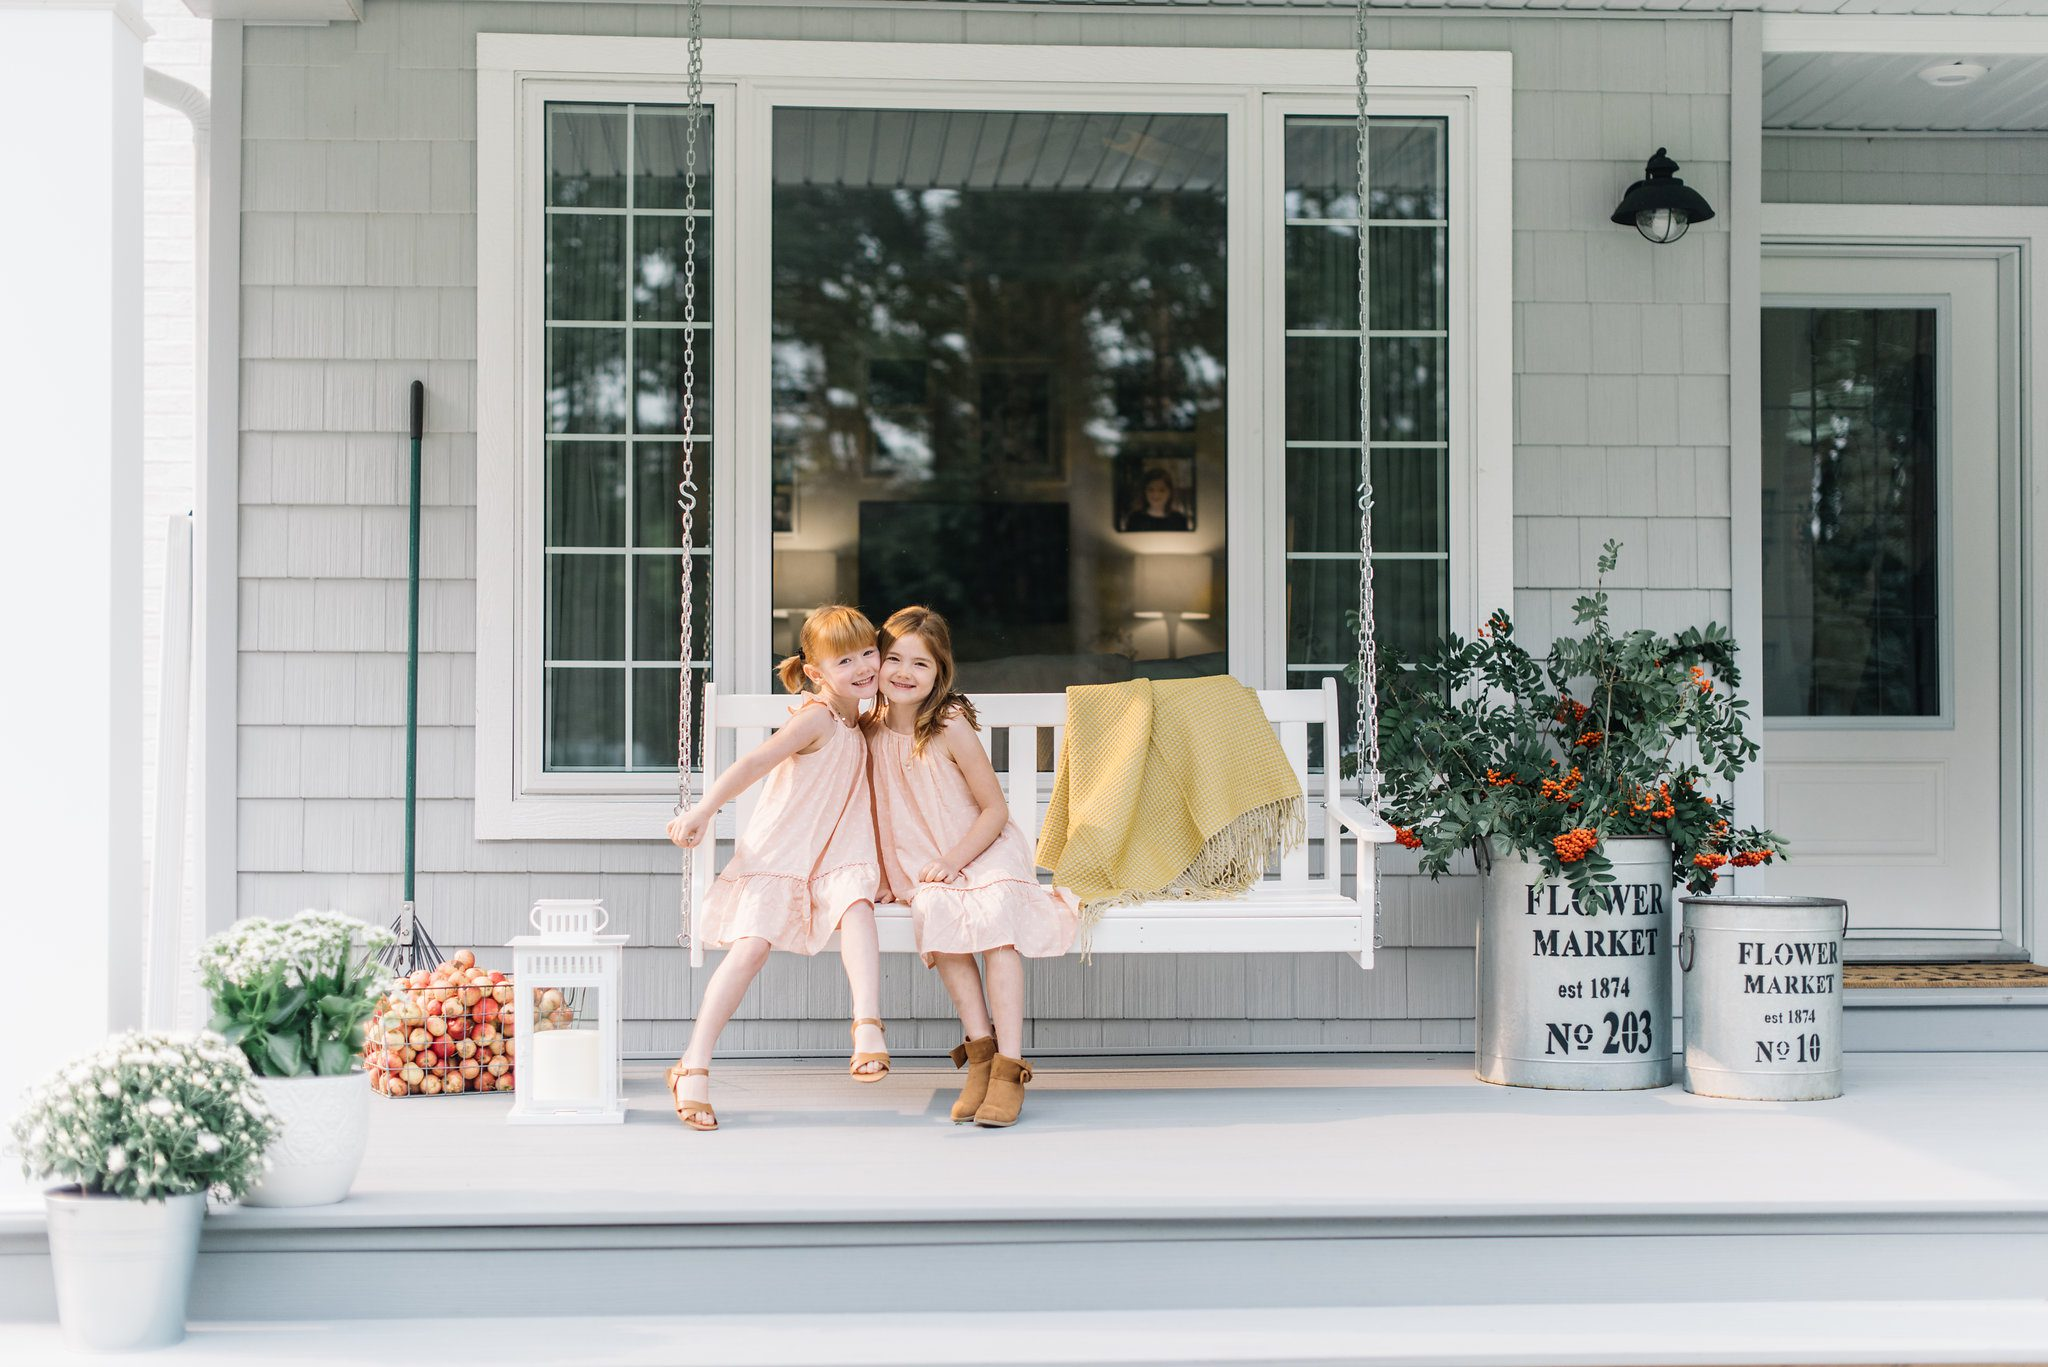 Simple Fall home decor ideas such as foraged branches and pots of white mums